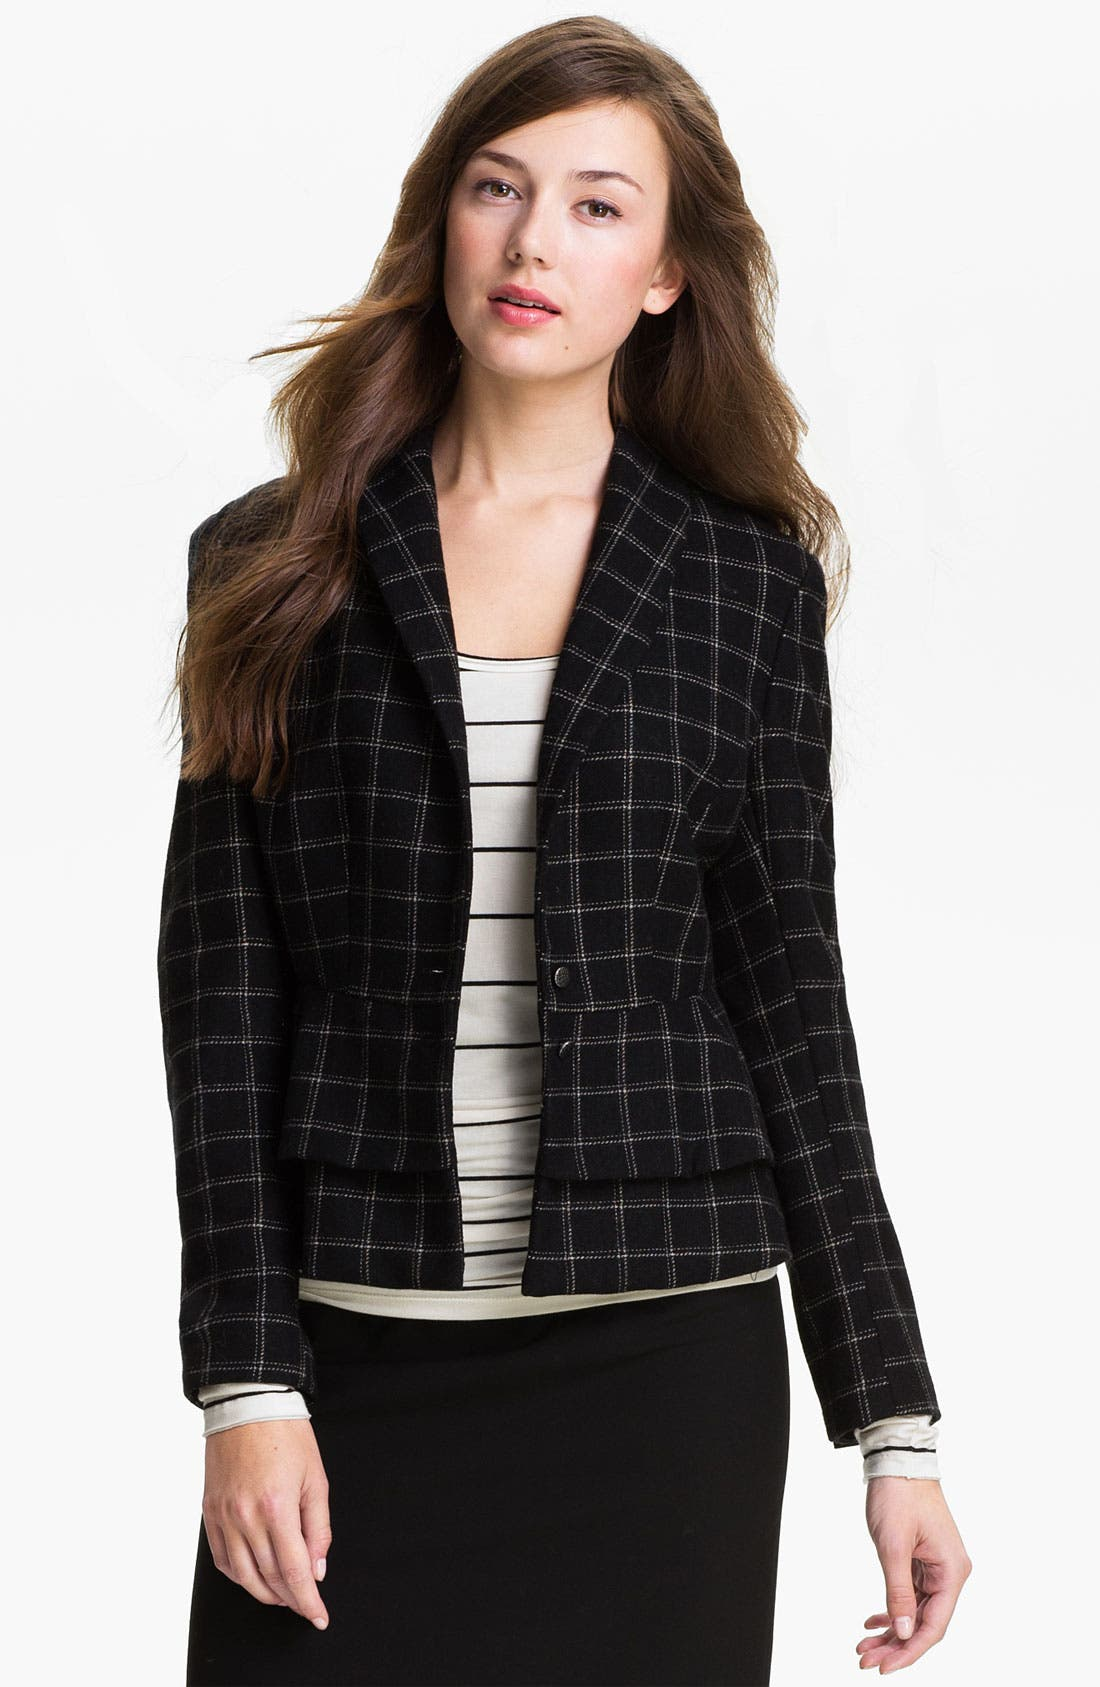 Alternate Image 1 Selected - Max & Mia Plaid Peplum Jacket